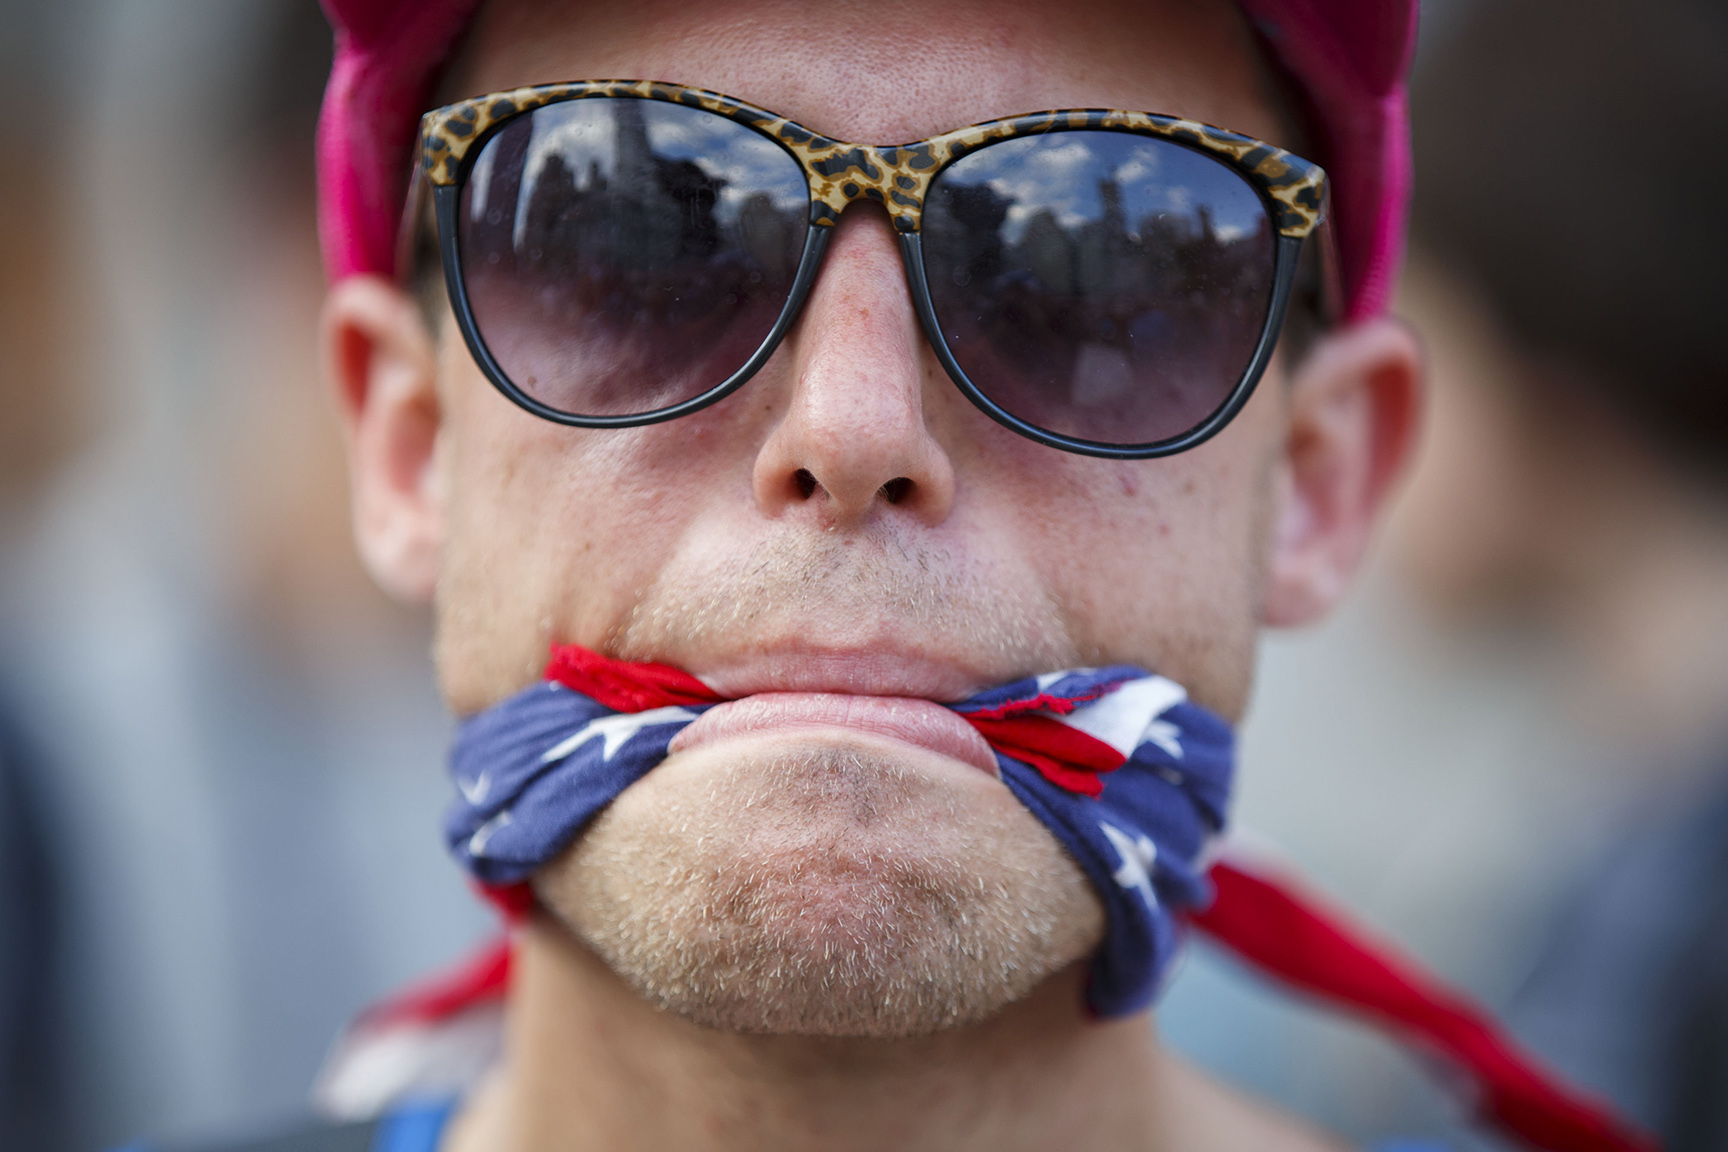 A protester stands with his mouth gagged